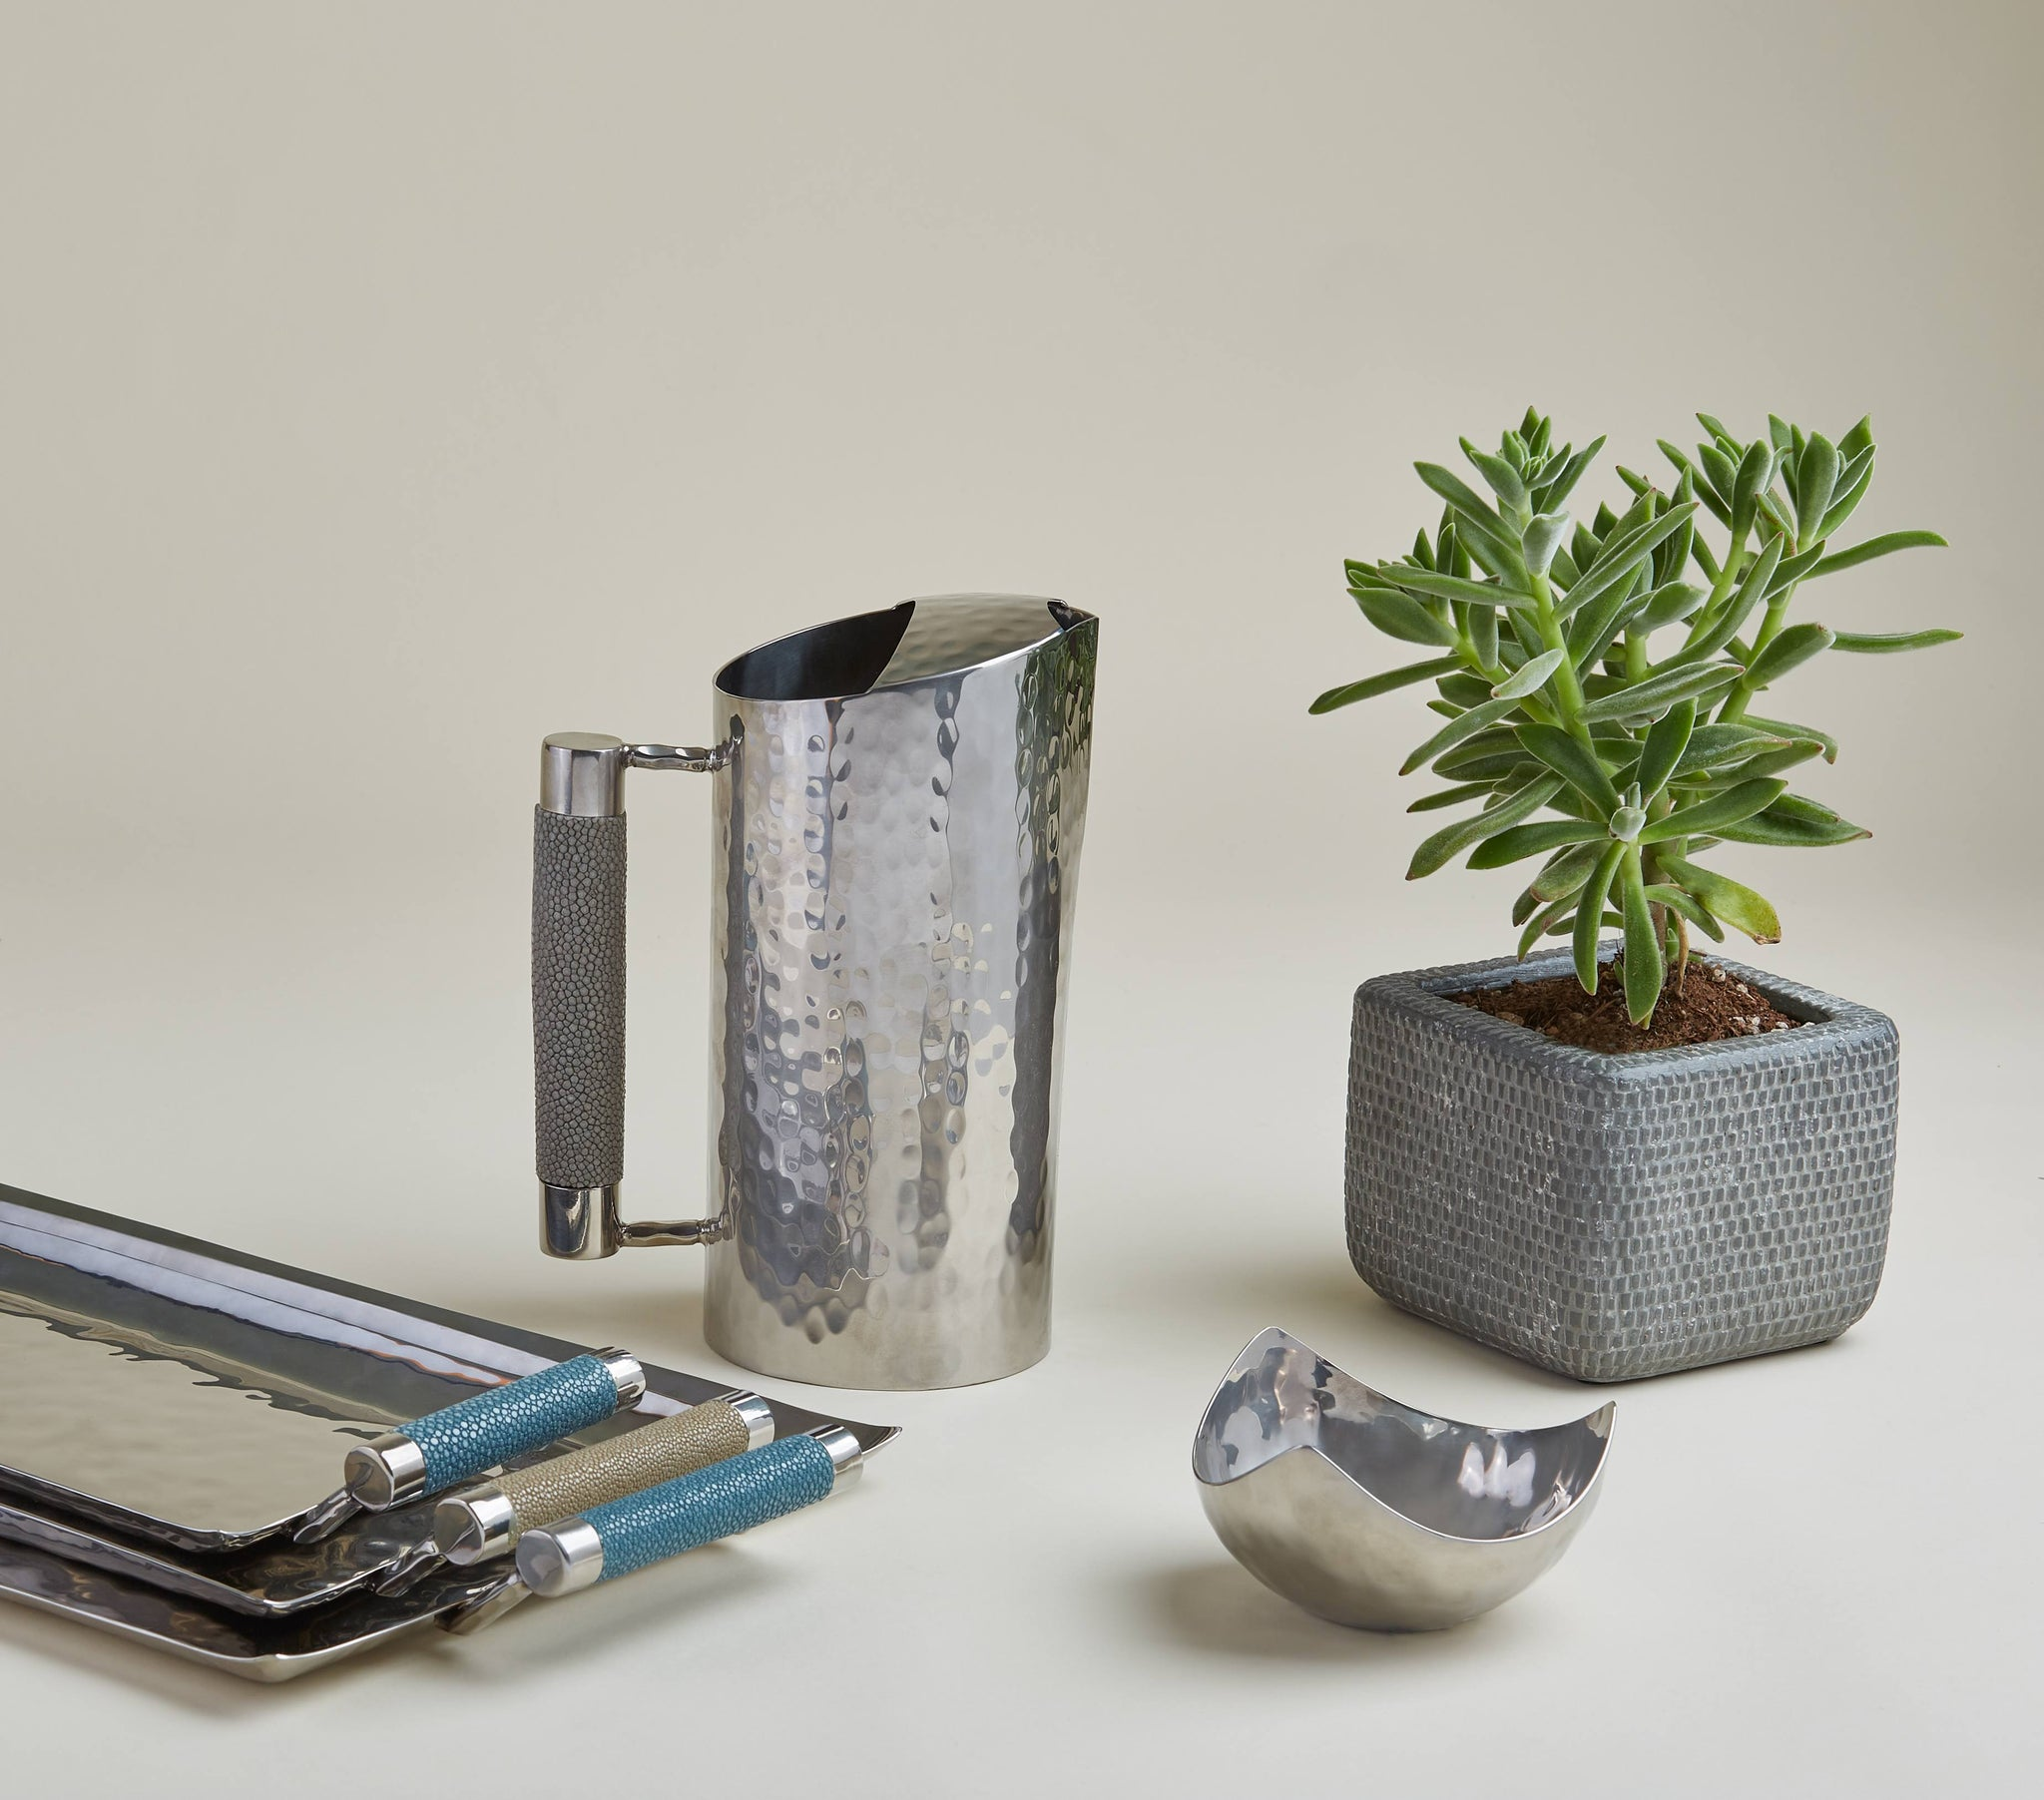 Stainless steel pitchers and trays with leather accents